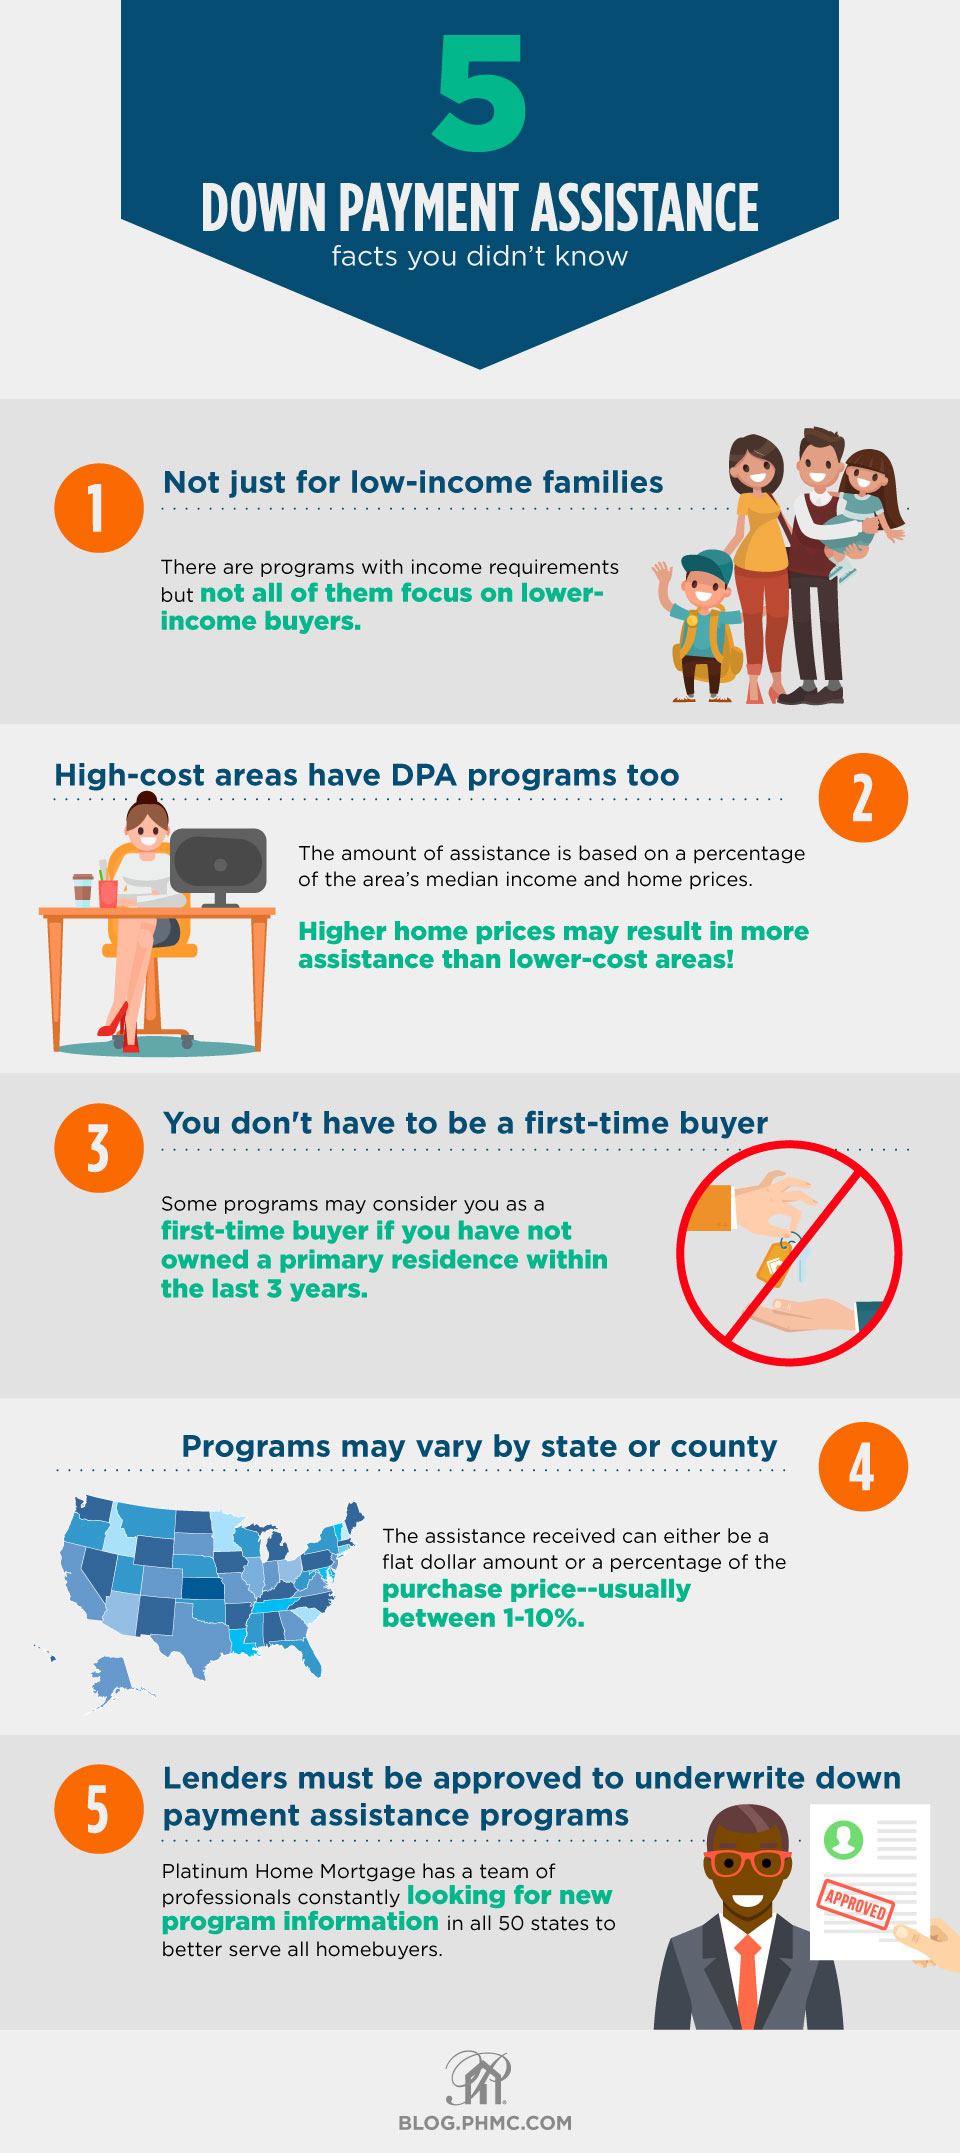 5 Facts about down payment assistance you didn't know 1. They aren't just for low-income individuals and families. Though there are programs with income requirements, not all of them focus on lower-income buyers. These are made for working Americans ready to take part in the American Dream! 2. High-cost areas have available down payment assistance programs too. No need to rule out high-cost areas. There are programs out there that are adjusted based off of a percentage range of the area's median income and home prices. In some cases, high cost areas may actually qualify for more down payment assistance than a lower cost area! 3. You don't have to be a first-time buyer. Some assistance programs may target first-time homebuyers only, but if you aren't, don't lose hope yet. These are types of programs that allow repeat buyers as well, so it is important to do your research before giving up. Also, there are down payment assistance programs geared towards first-time buyers that will consider you as a first-time buyer again if you have not owned a primary residence within the last 3 years! 4. Down payment assistance programs generally vary by the state or county you are purchasing in. Different cities and counties offer different assistance amounts based on income and median home values in that given area. Many states offer DPA programs in the form of grants or tax credits. Grants are great because the amount given does not necessarily need to be paid back. Depending on the area you live in, the assistance received can either be a flat dollar amount or a percentage of the purchase price--usually between 1-10%. 5. Lenders must be approved to underwrite and originate down payment assistance programs. Platinum Home Mortgage has been approved in many states across the United States to offer down payment assistance programs. We have a team of professionals constantly looking for new program information in all 50 states to better serve all homebuyers. Find this image on blog.phmc.com